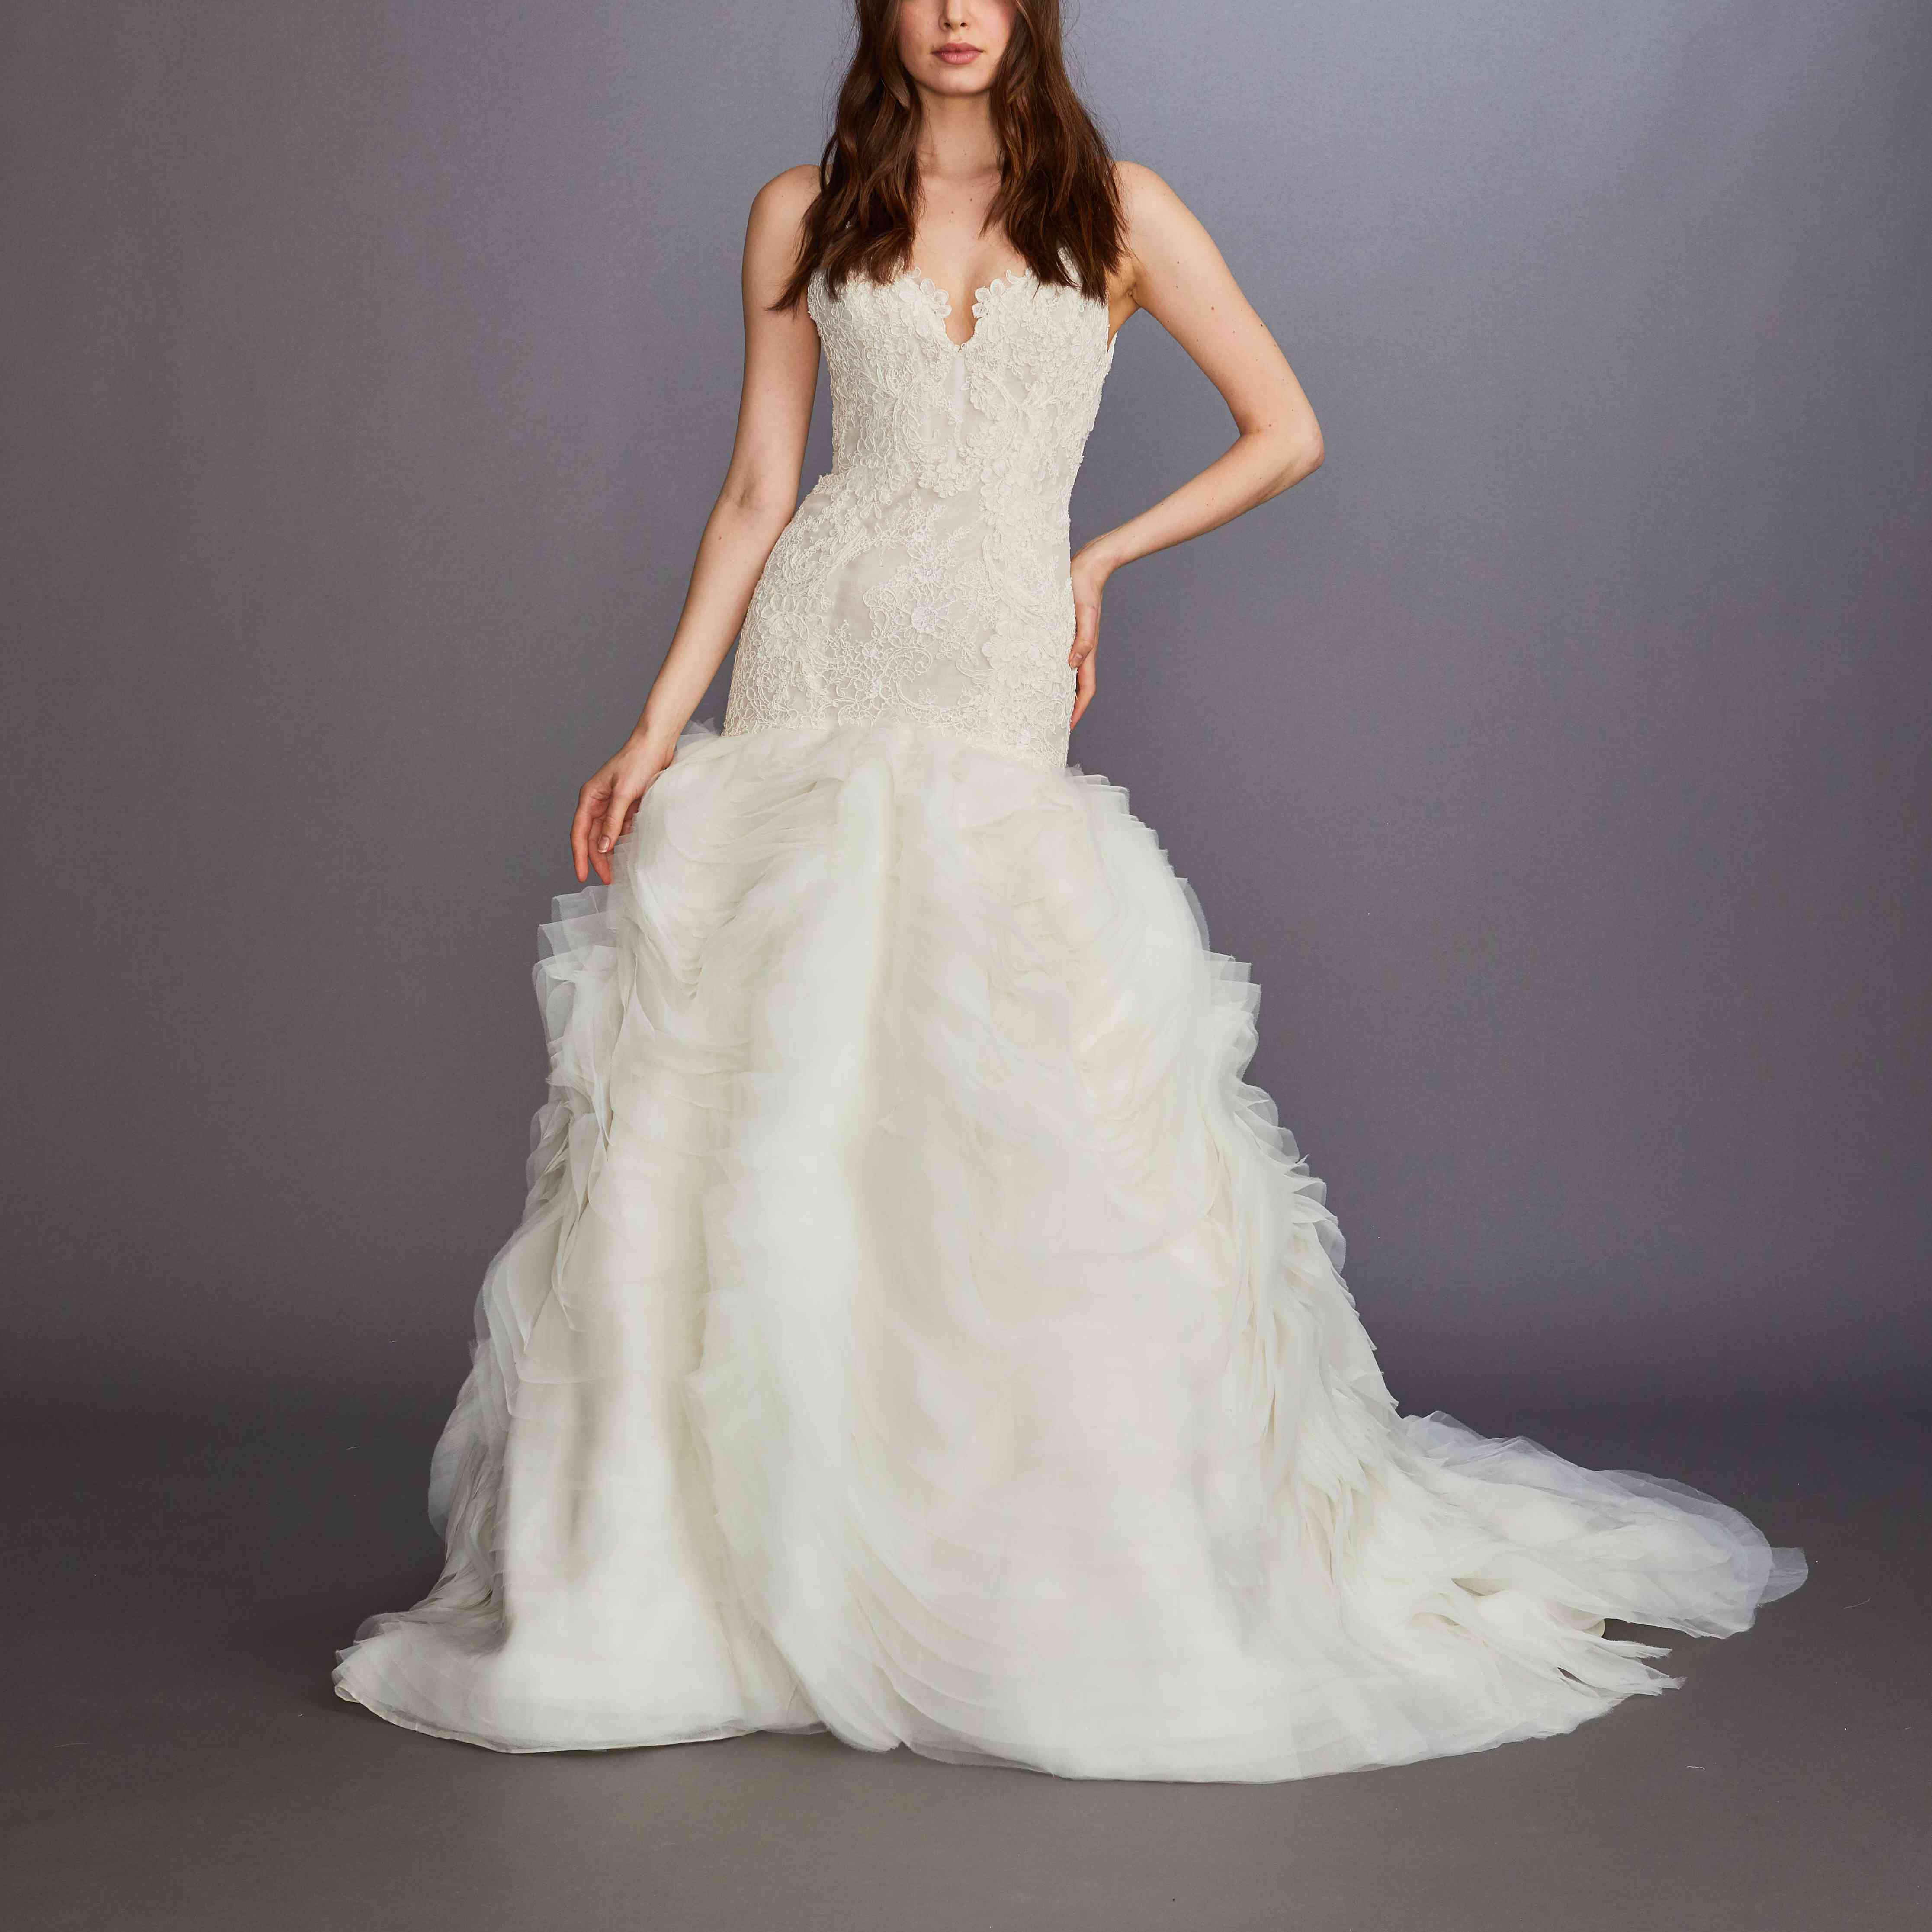 Kassia fit-and-flare wedding dress by Lazaro